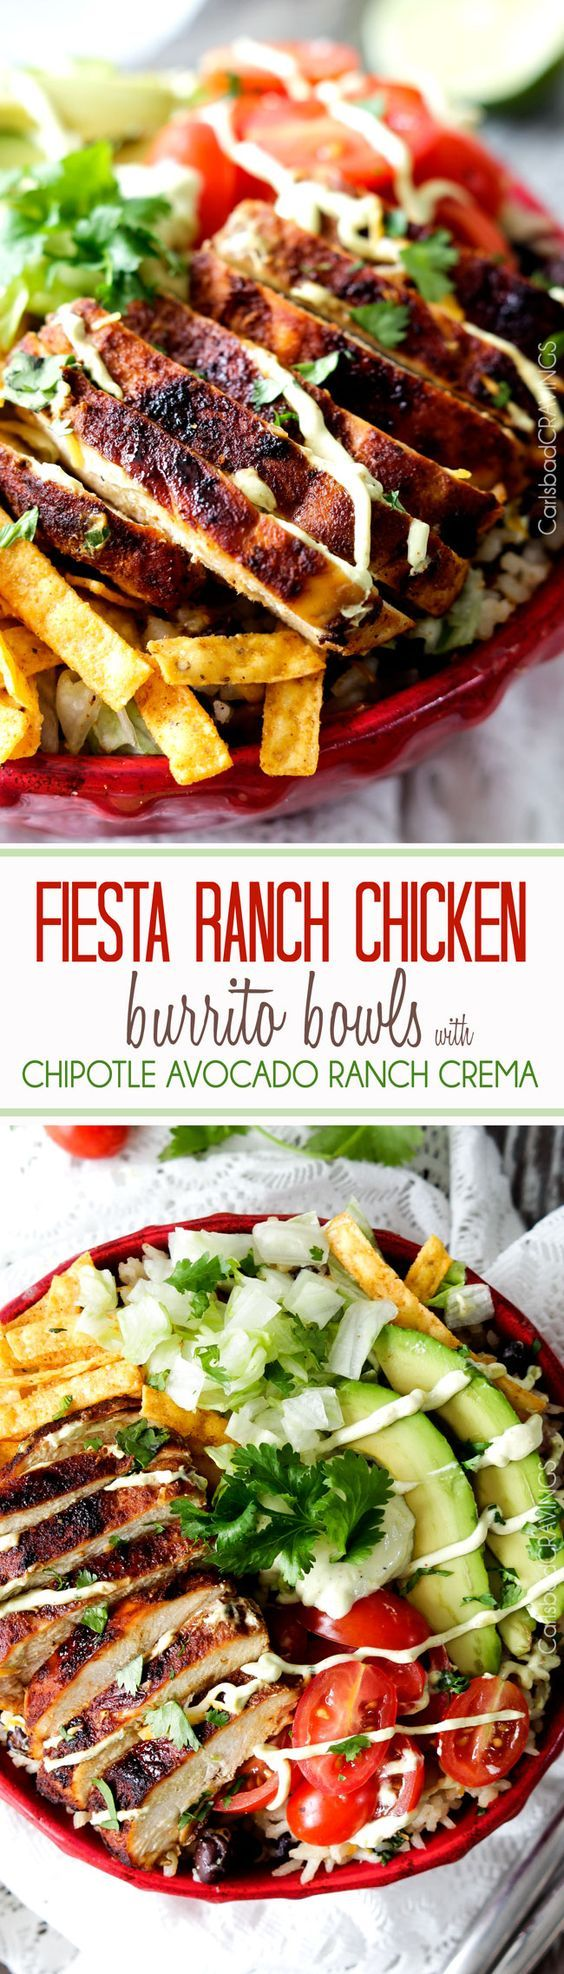 Fiesta Ranch Chicken Burrito Bowls piled with tender, marinated fiesta ranch chicken, cheesy one pot cilantro lime rice with black beans, guilt free Chipotle Ranch Avocado Crema and all your favorite burrito fixins'. An easy, explosion of flavor!   Sponsored by Hidden Valley #ad #hiddenvalley #rancheverything